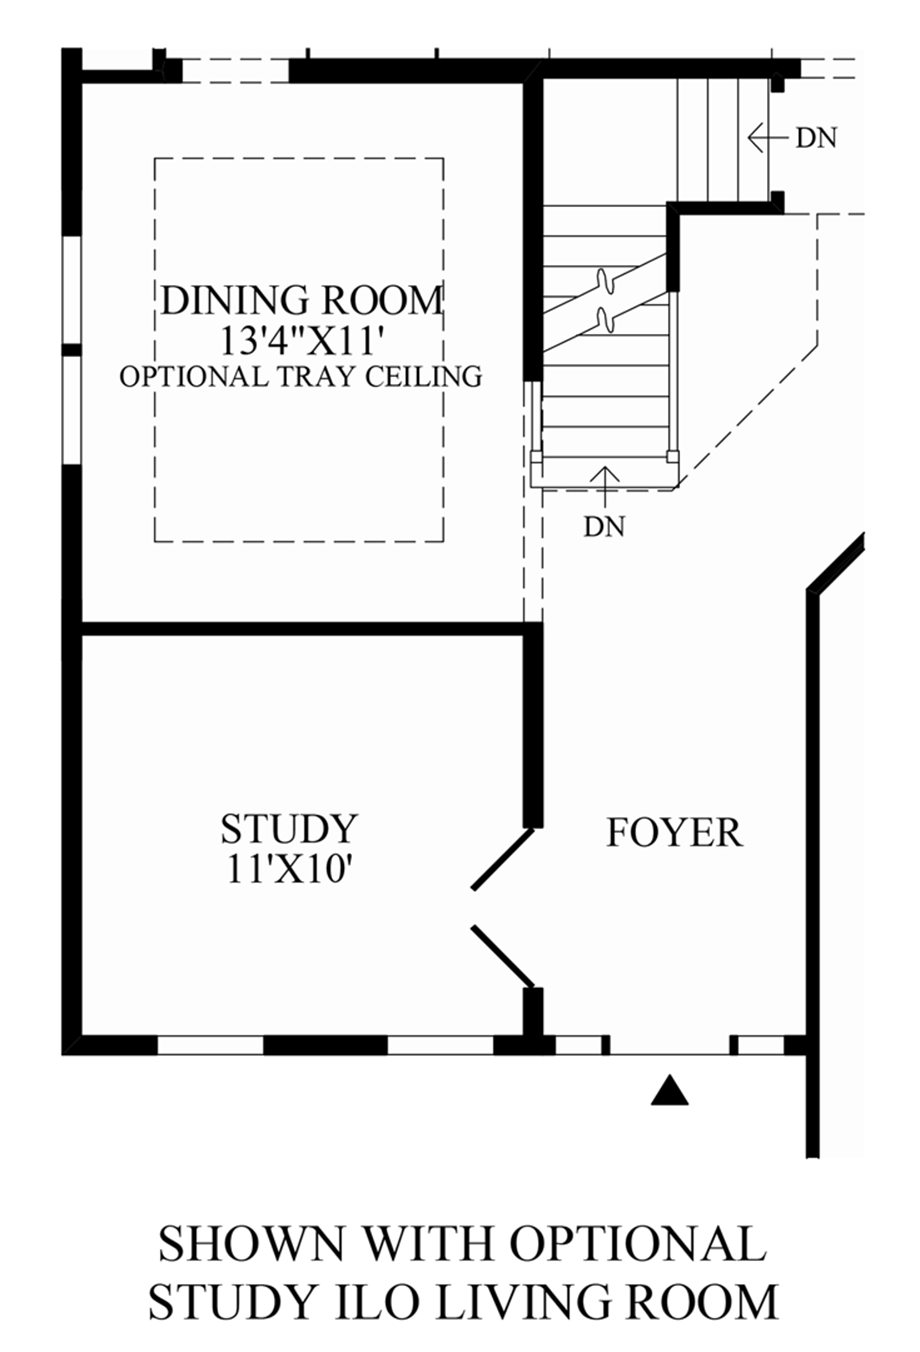 Optional Study ILO Living Room Floor Plan